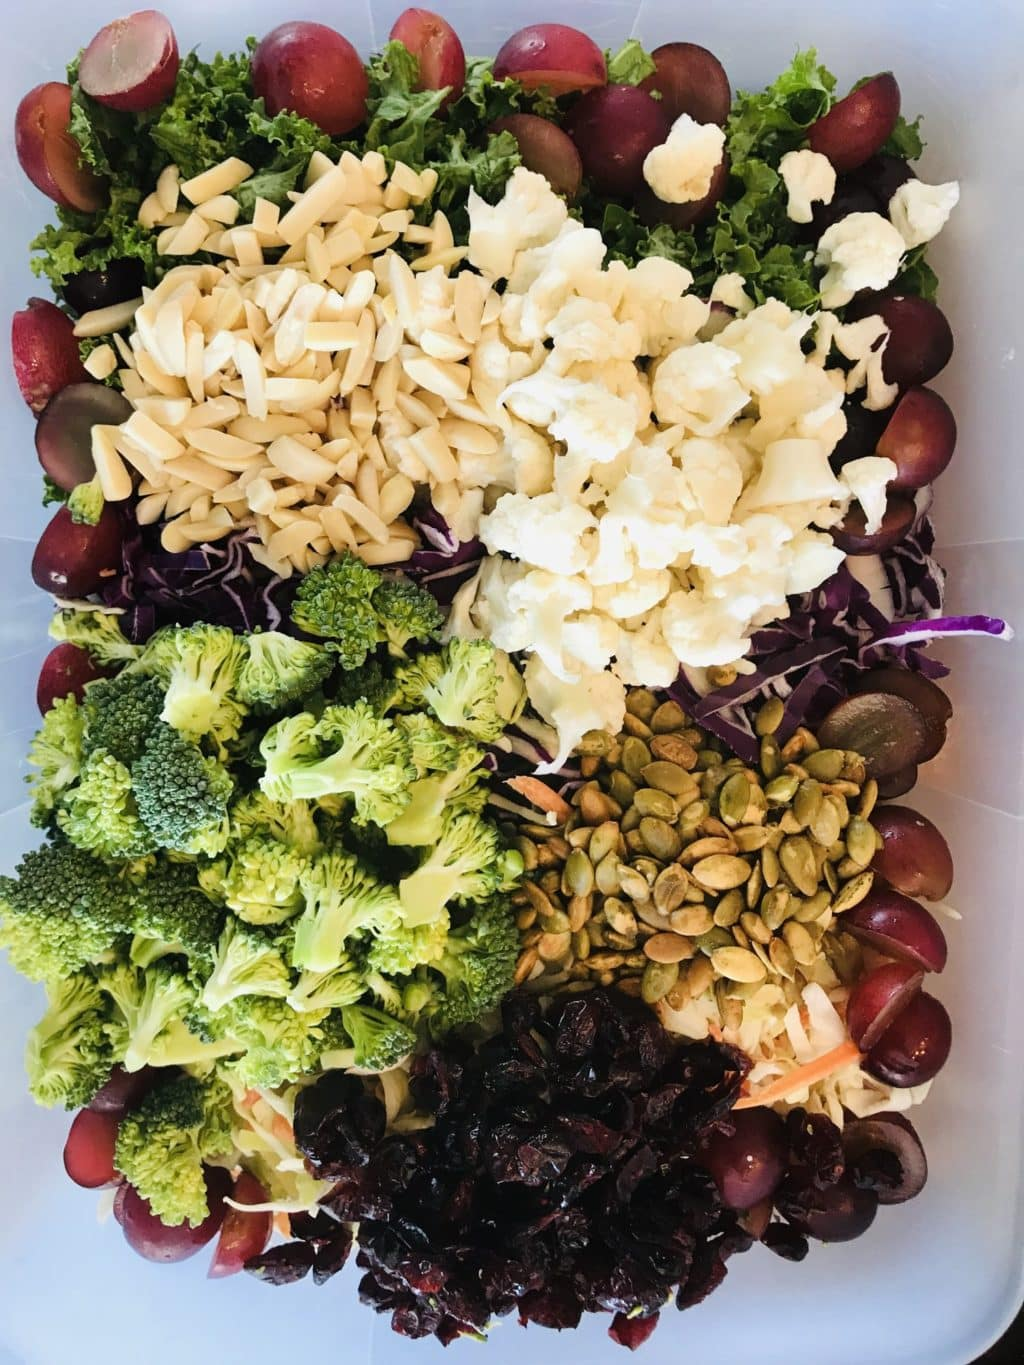 Whole 30 Detox Salad with broccoli, califlower, almonds, grapes, pumpkin seeds and more super foods.